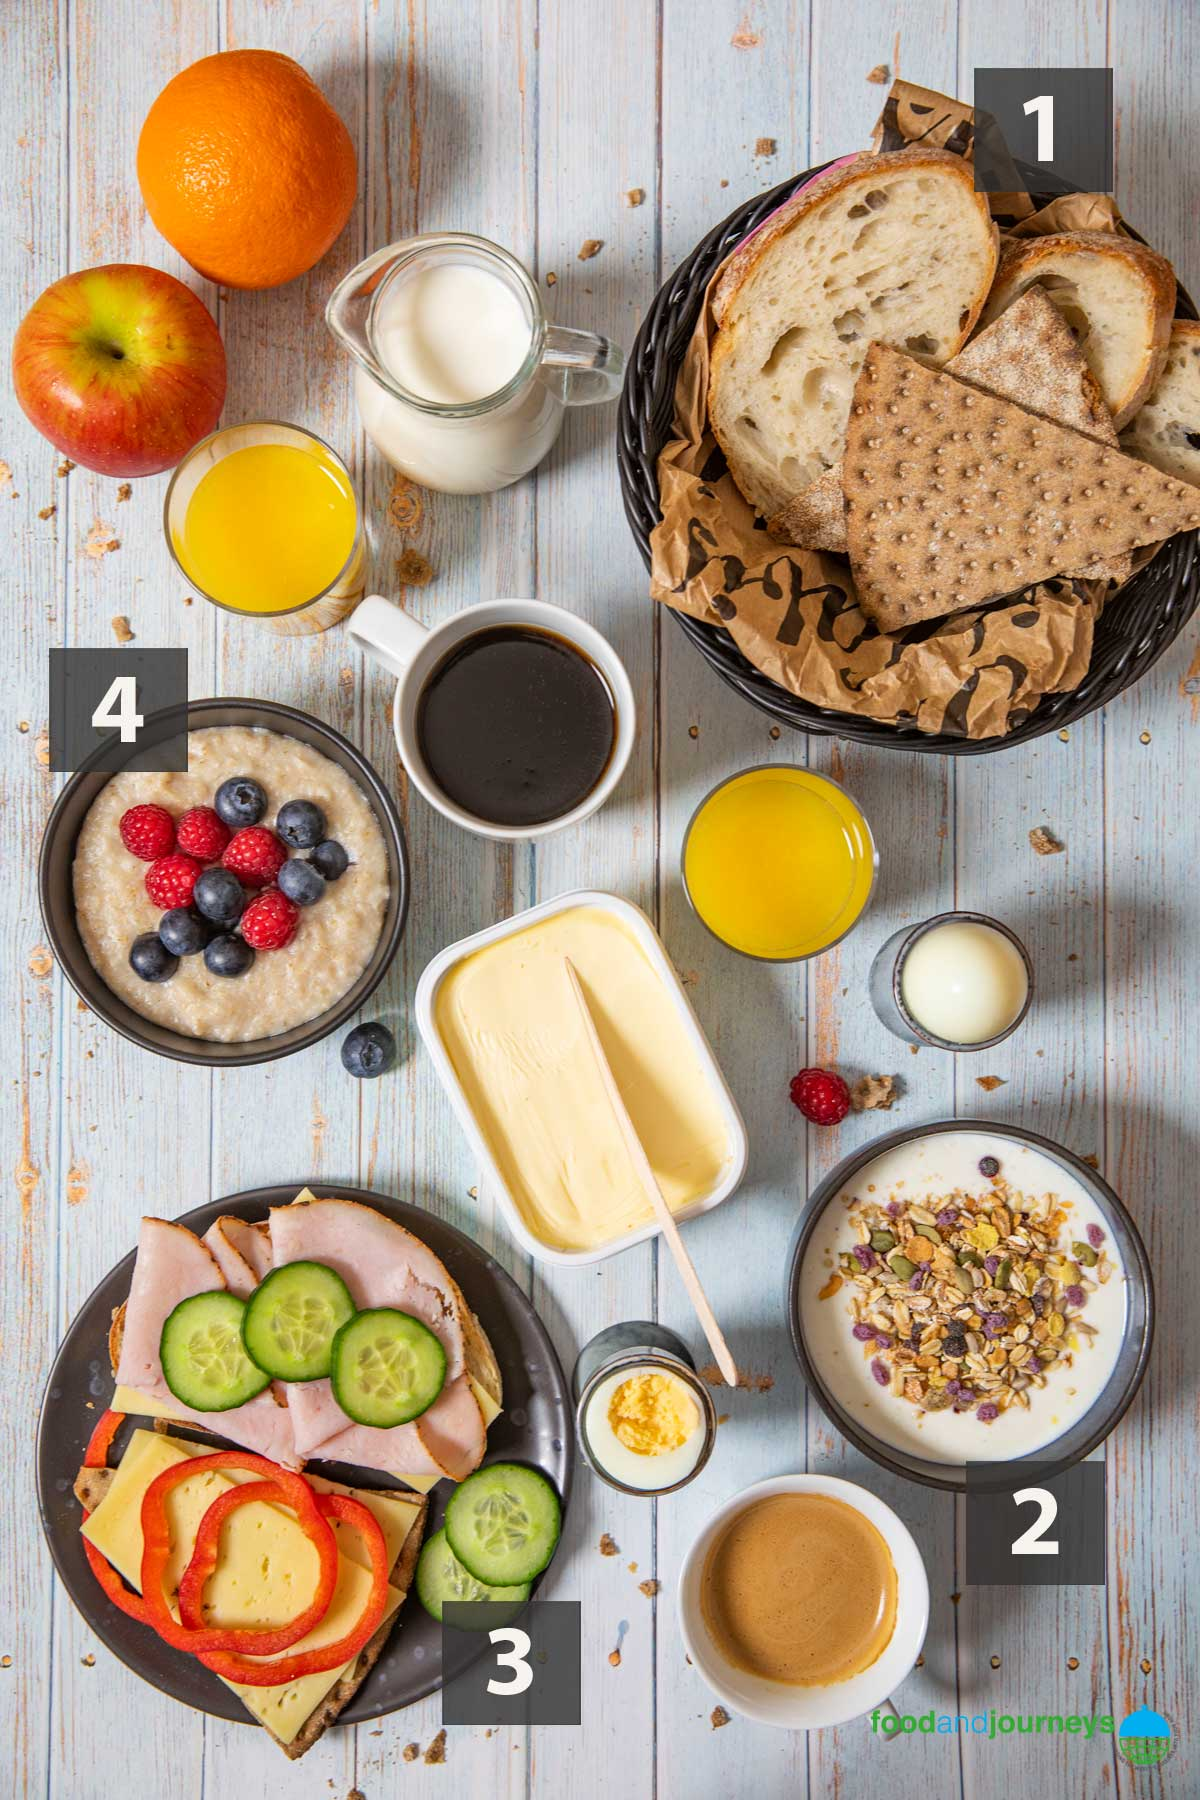 An overhead shot of a typical Swedish breakfast